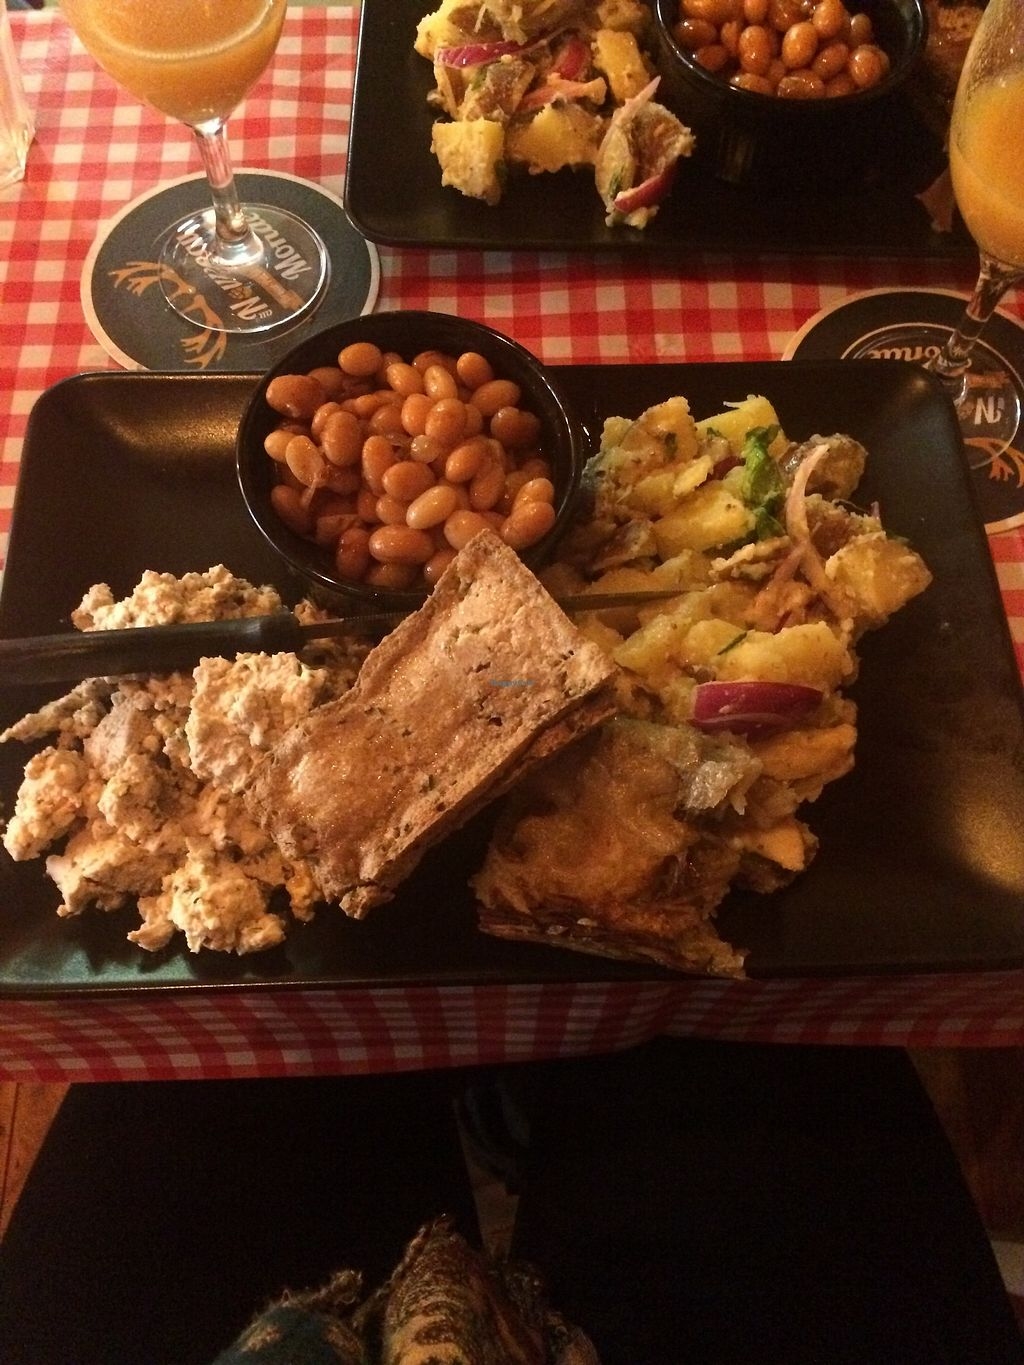 """Photo of Au Nouveau Monde  by <a href=""""/members/profile/sabrinajh"""">sabrinajh</a> <br/>On Sunday they offer an amazing brunch - this is the savoury plate. Tofu scramble, potato salad, fried tofu, beans in a maple syrup sauce. AMAZING! <br/> March 10, 2018  - <a href='/contact/abuse/image/88646/368933'>Report</a>"""